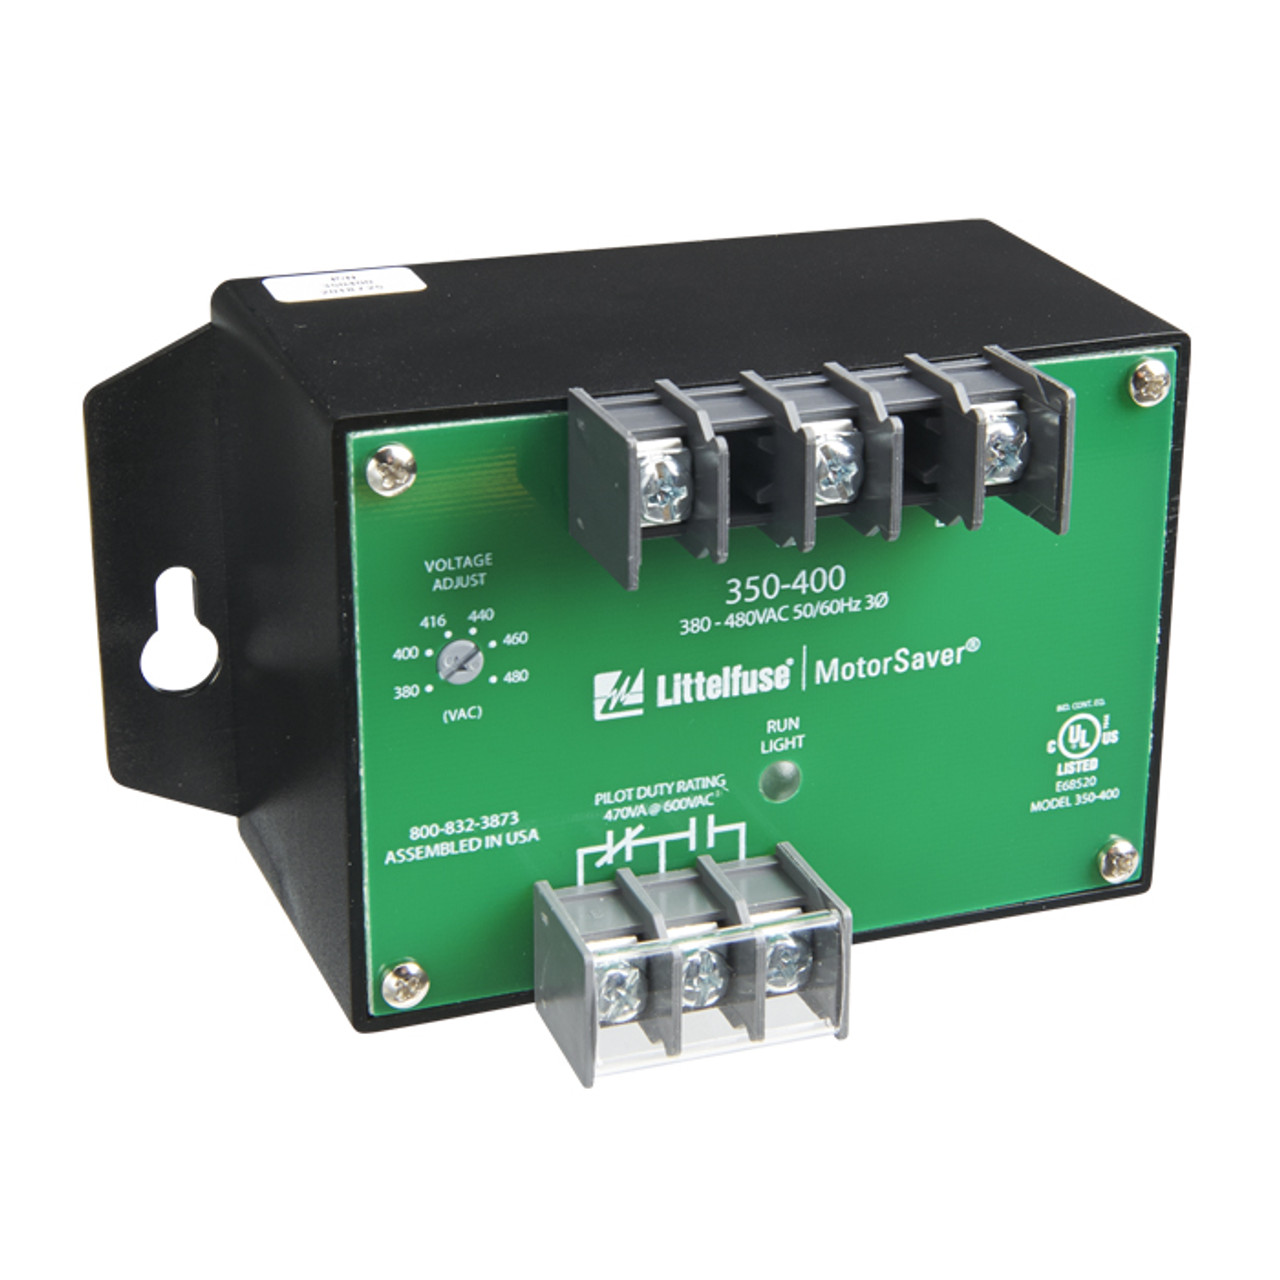 3-PHASE VOLTAGE MONITOR 380-4